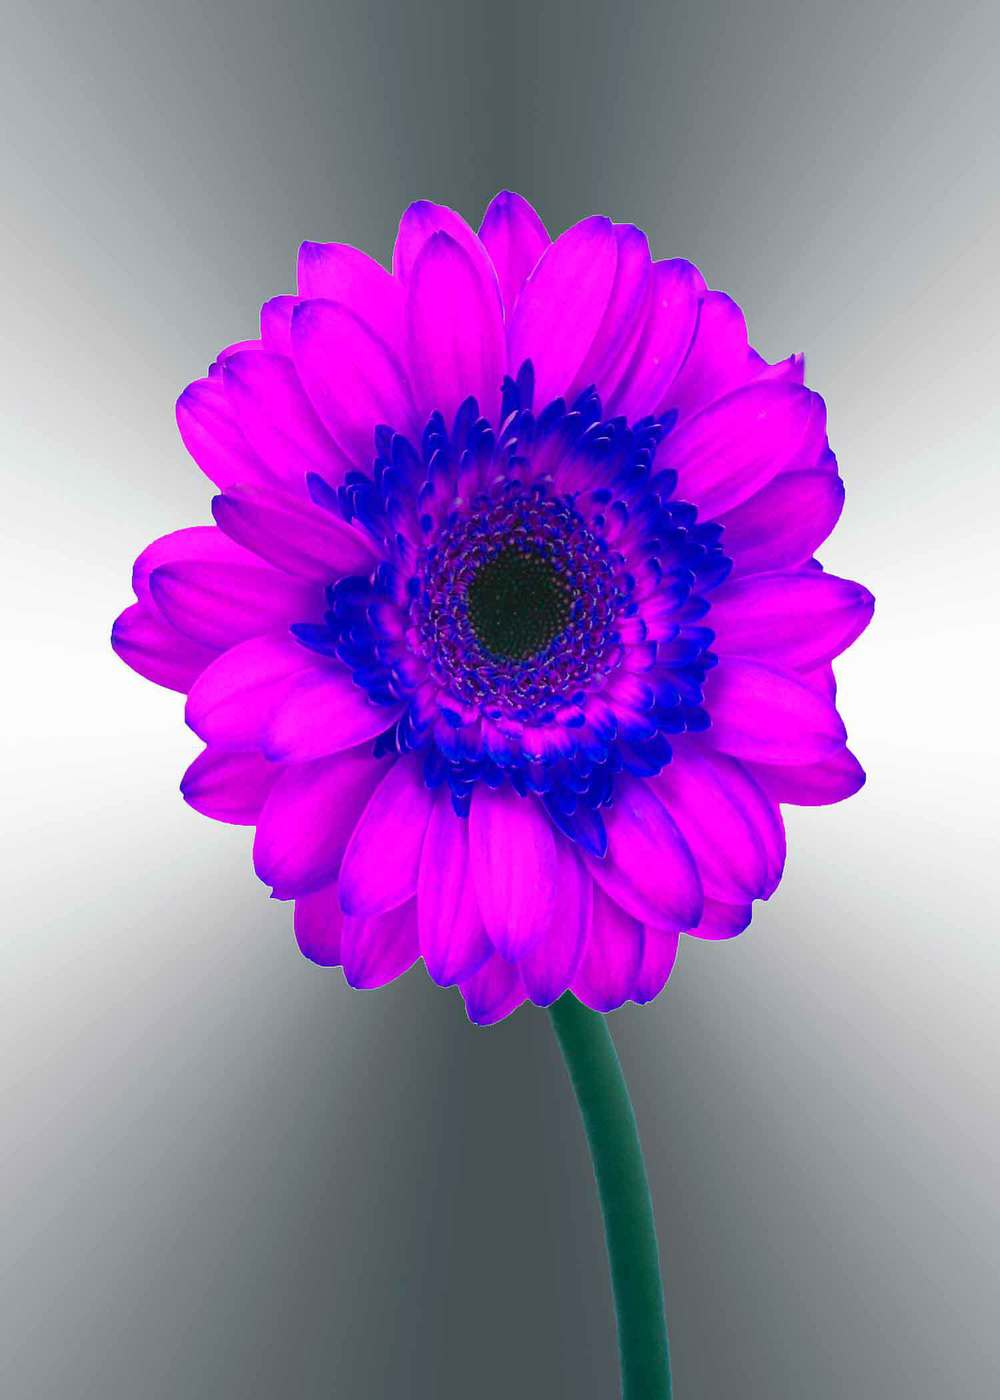 purple-gerger-daisy-5x7-(22-of-236)-Edit-2-copy-2.jpg